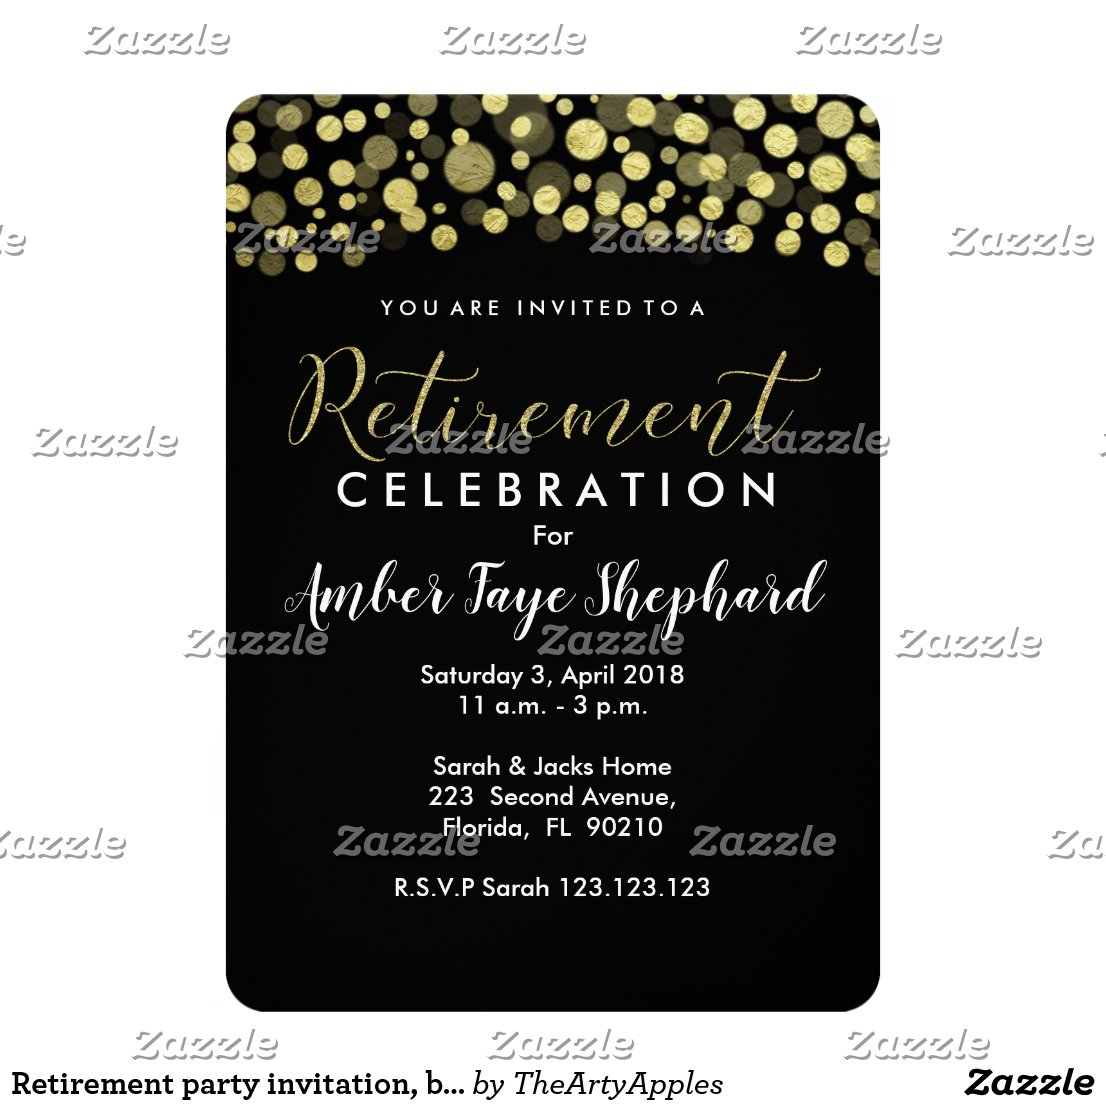 Retirement party invitation, black and gold card